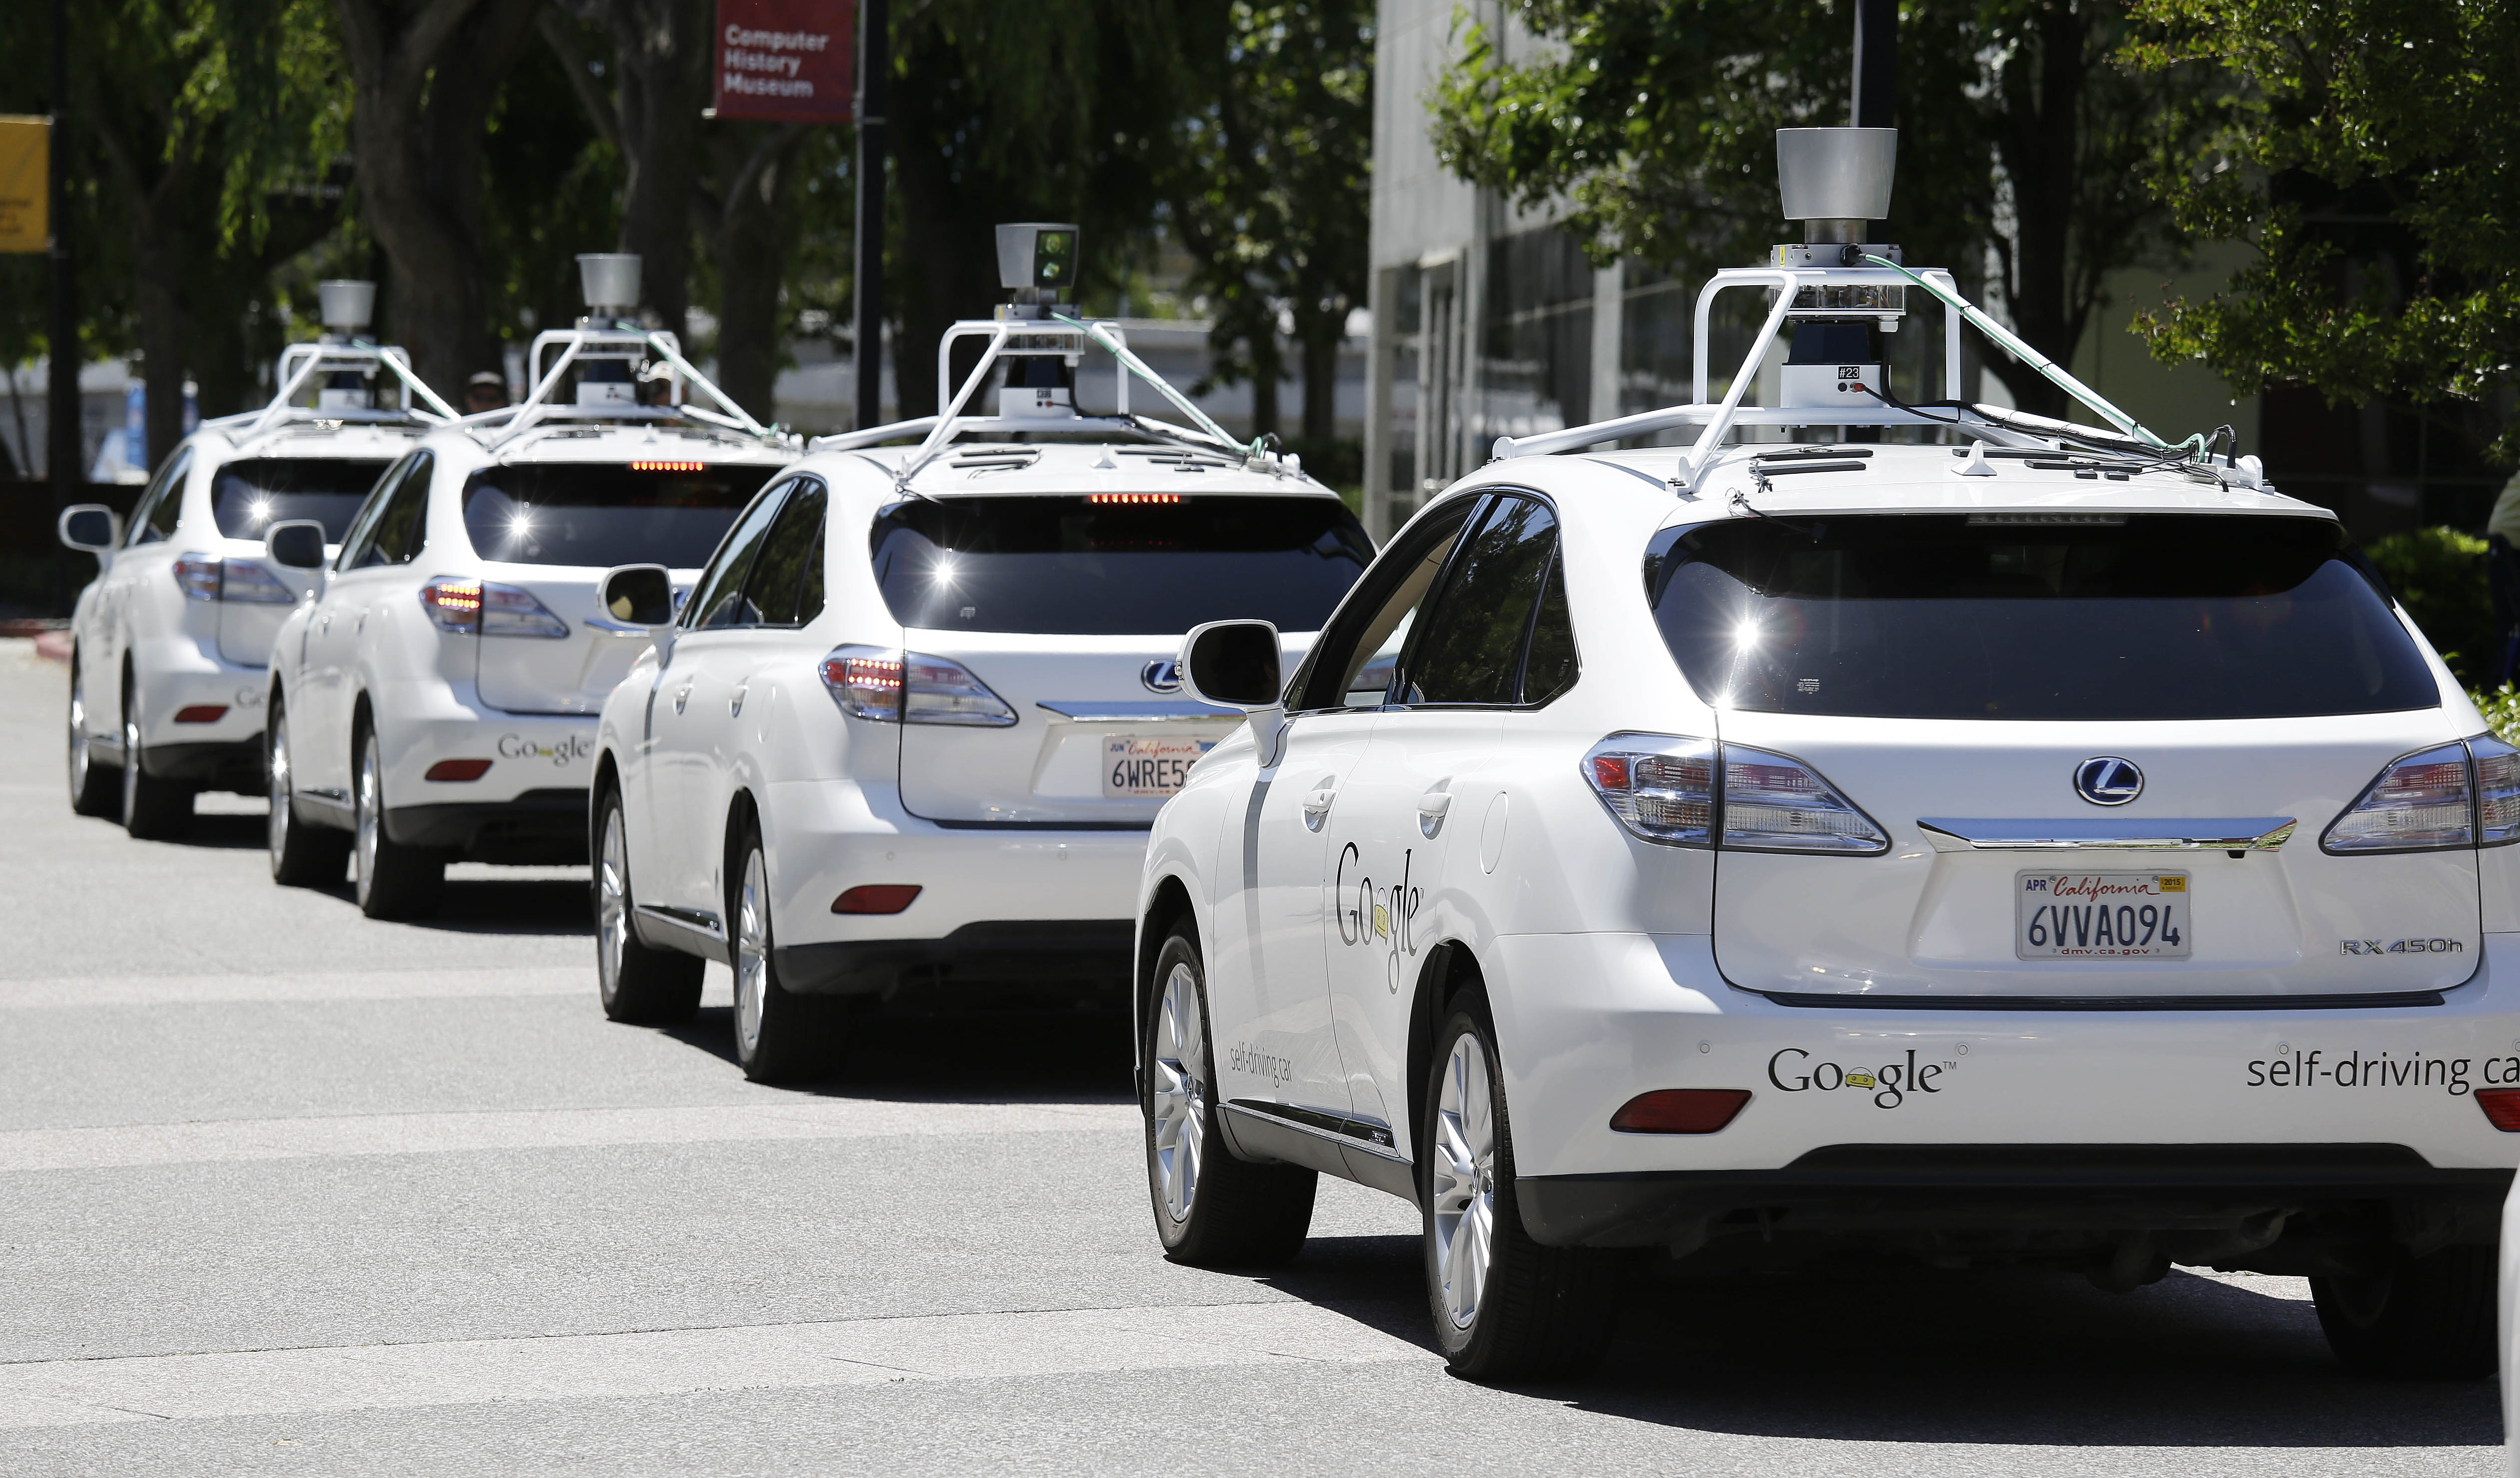 Terrorists May Use Self-Driving Cars as Portable Weapons